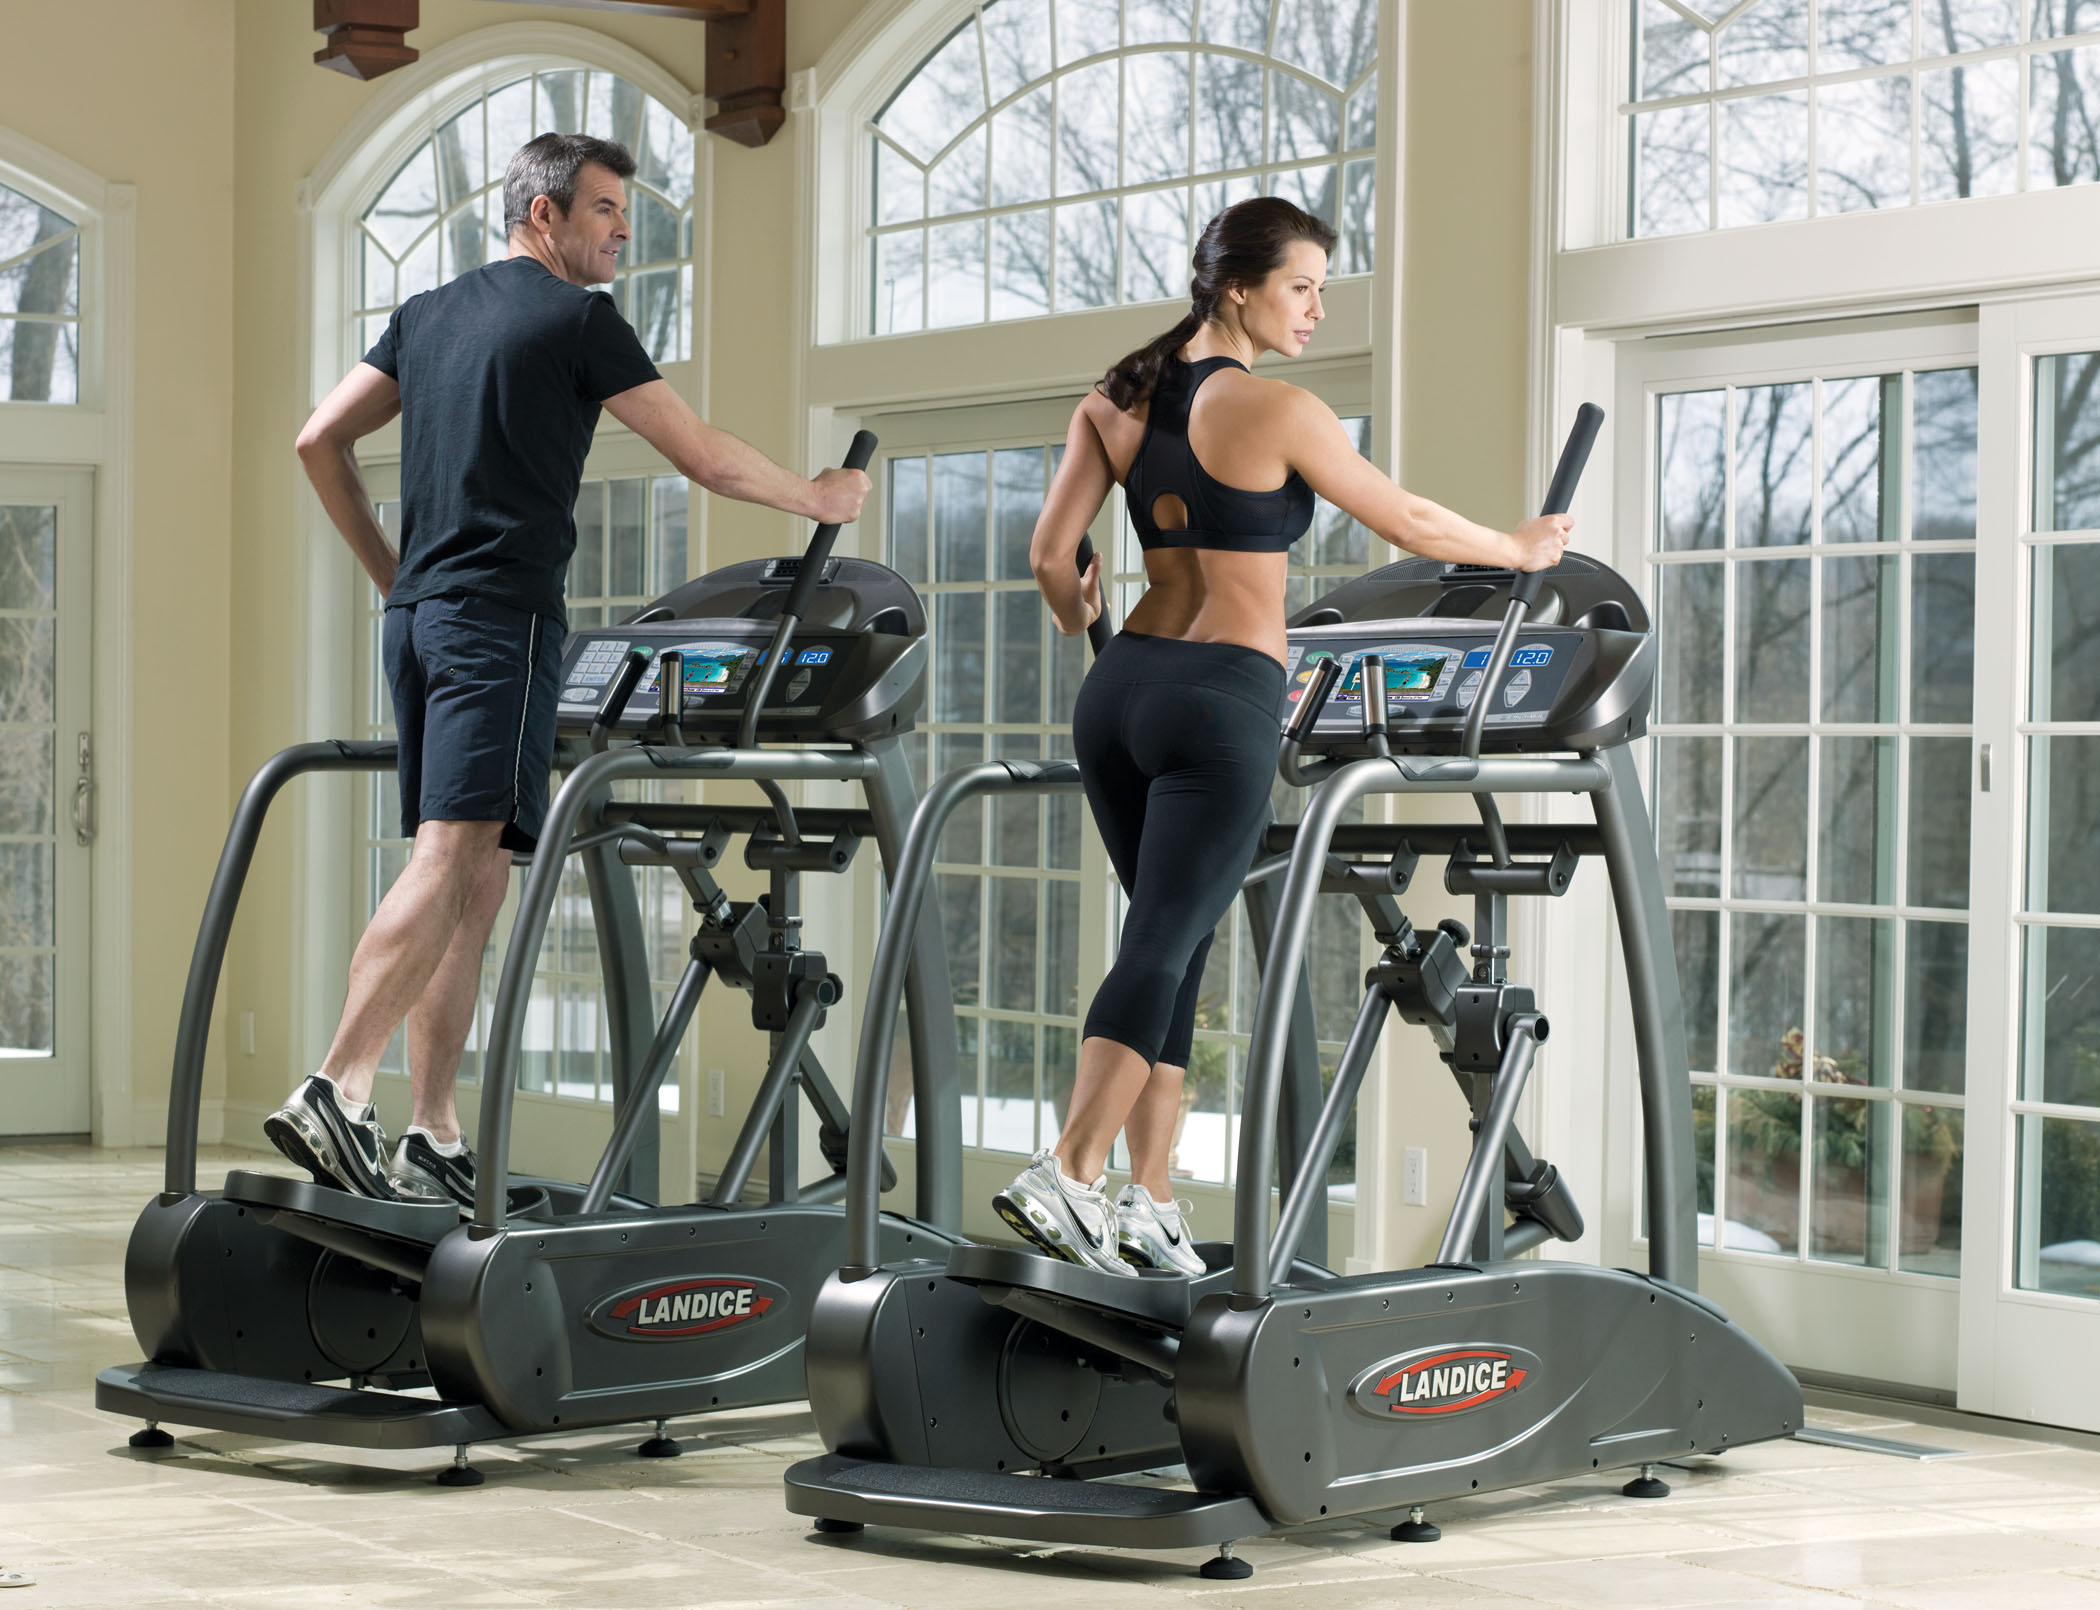 Landice Elliptical Two Models